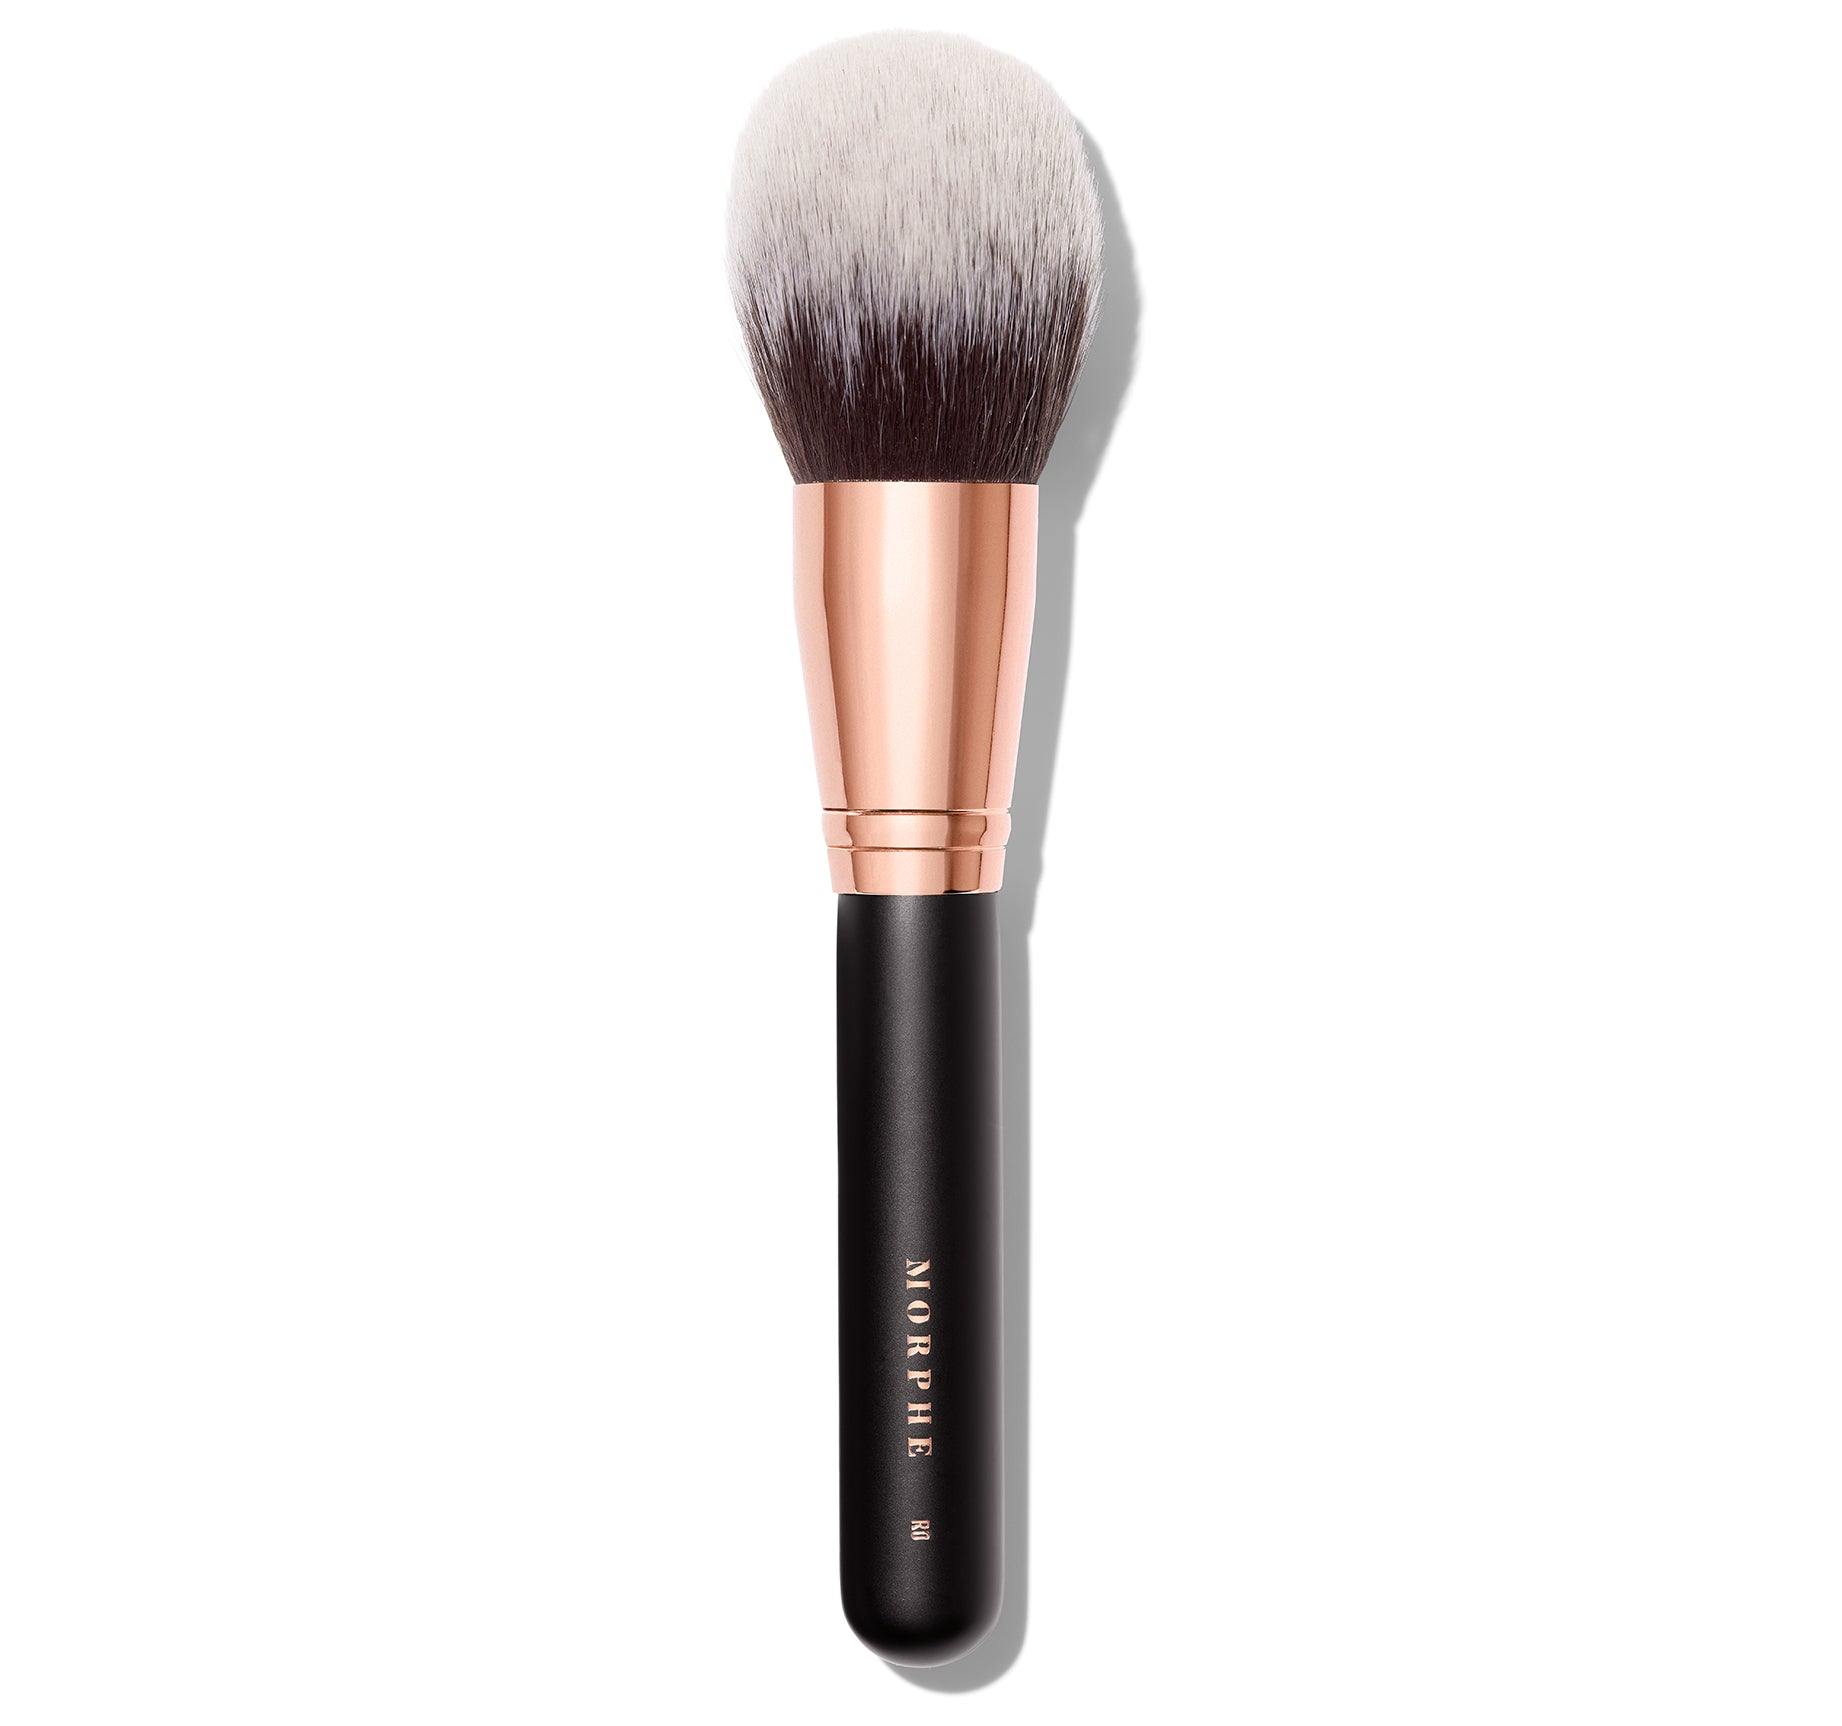 R0 - DELUXE POWDER BRUSH, view larger image